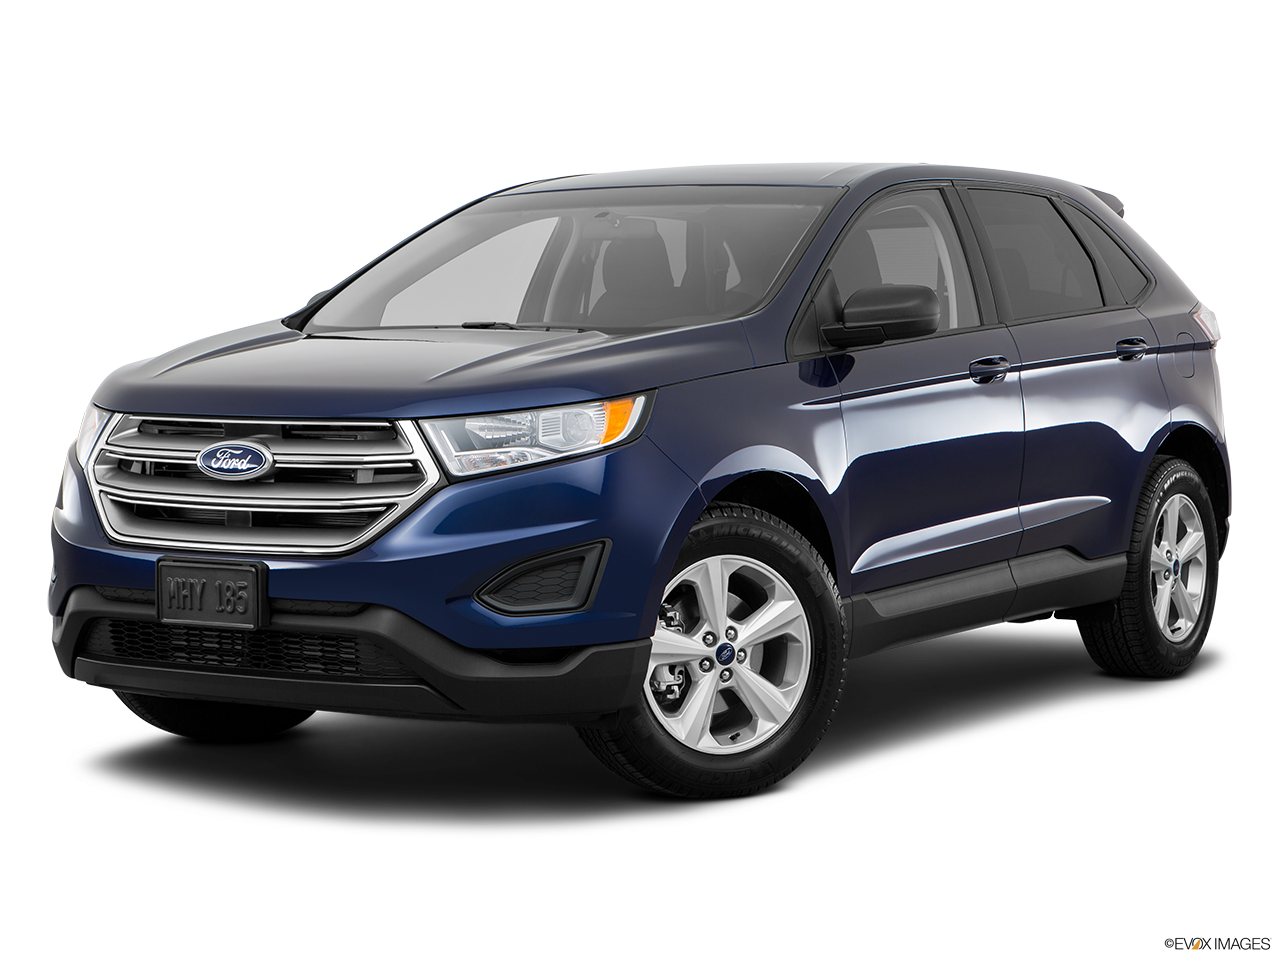 Test Drive A 2016 Ford Edge at Galpin Ford in Los Angeles